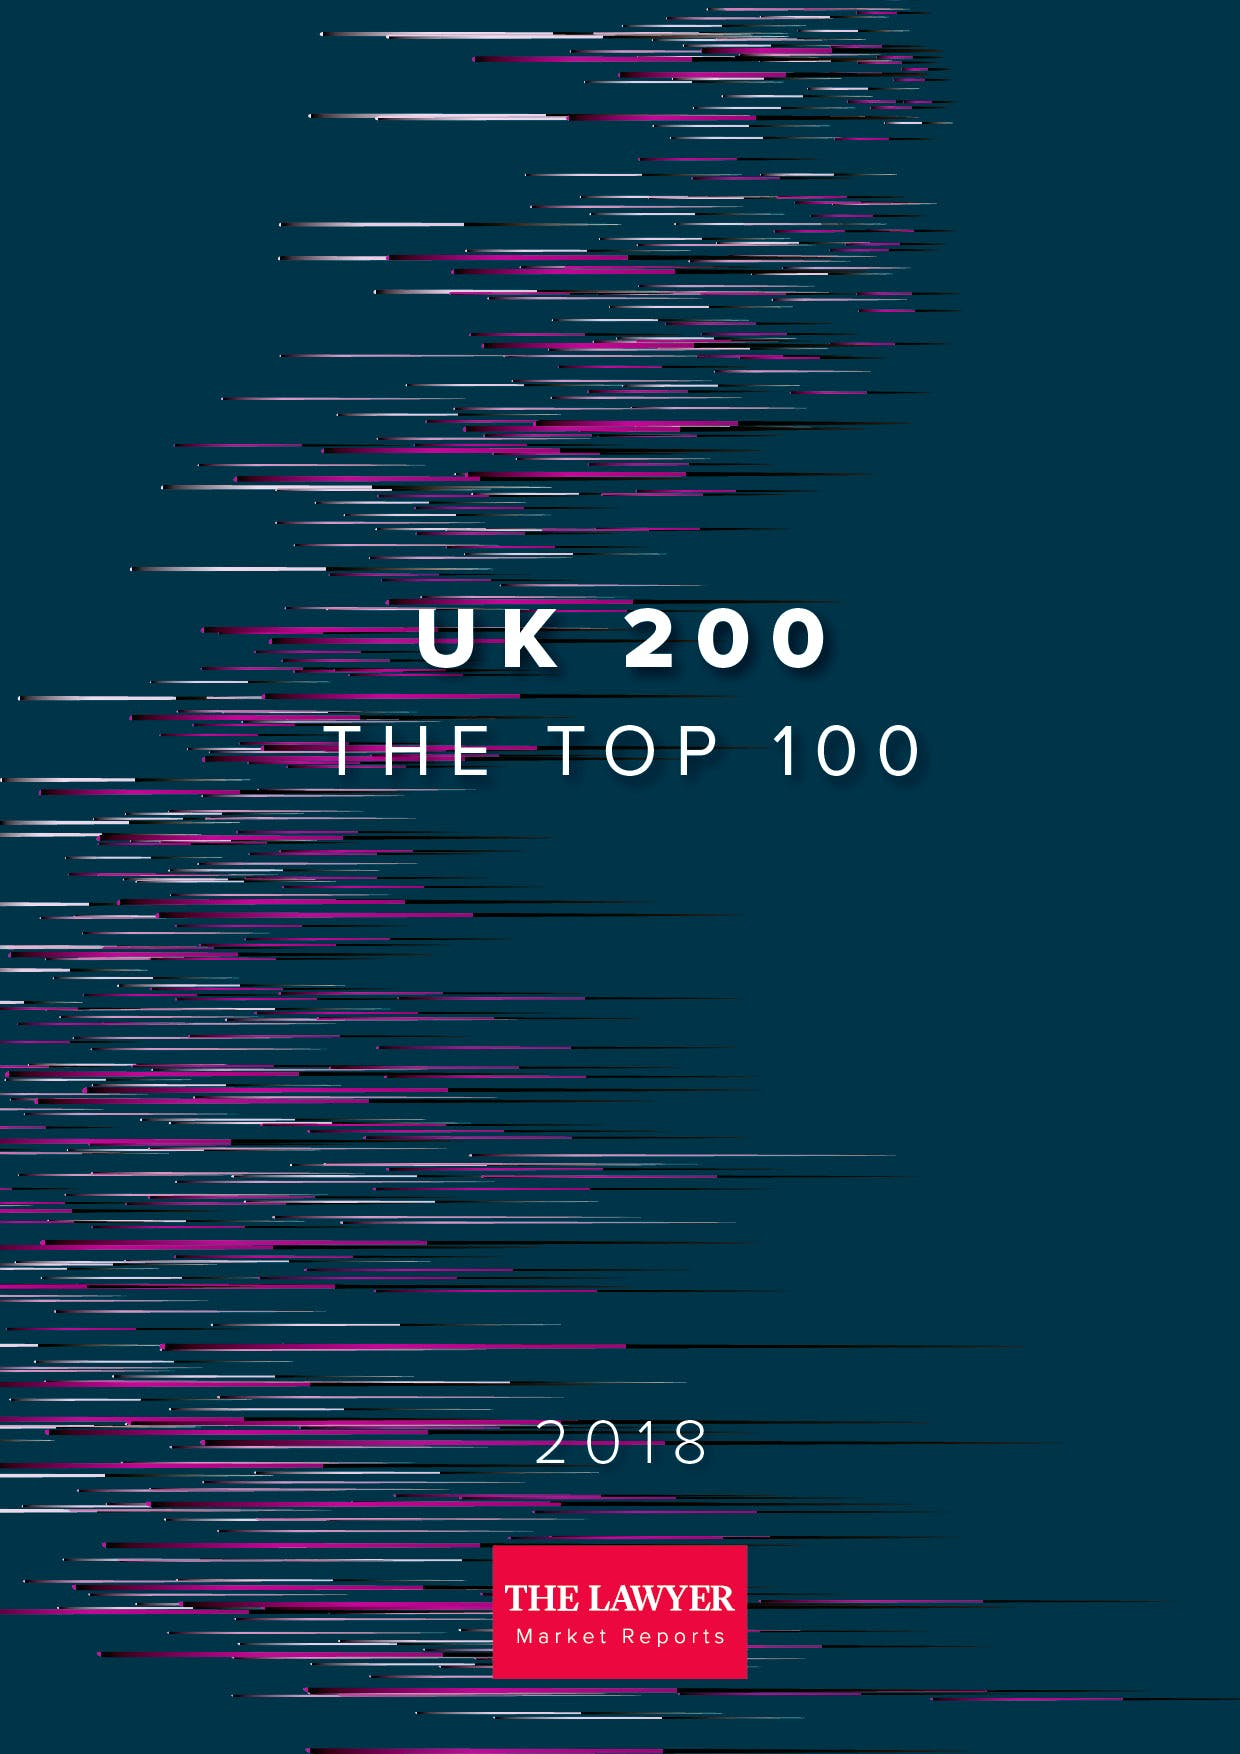 The Lawyer UK 200 front cover for top law firms uk ranking article